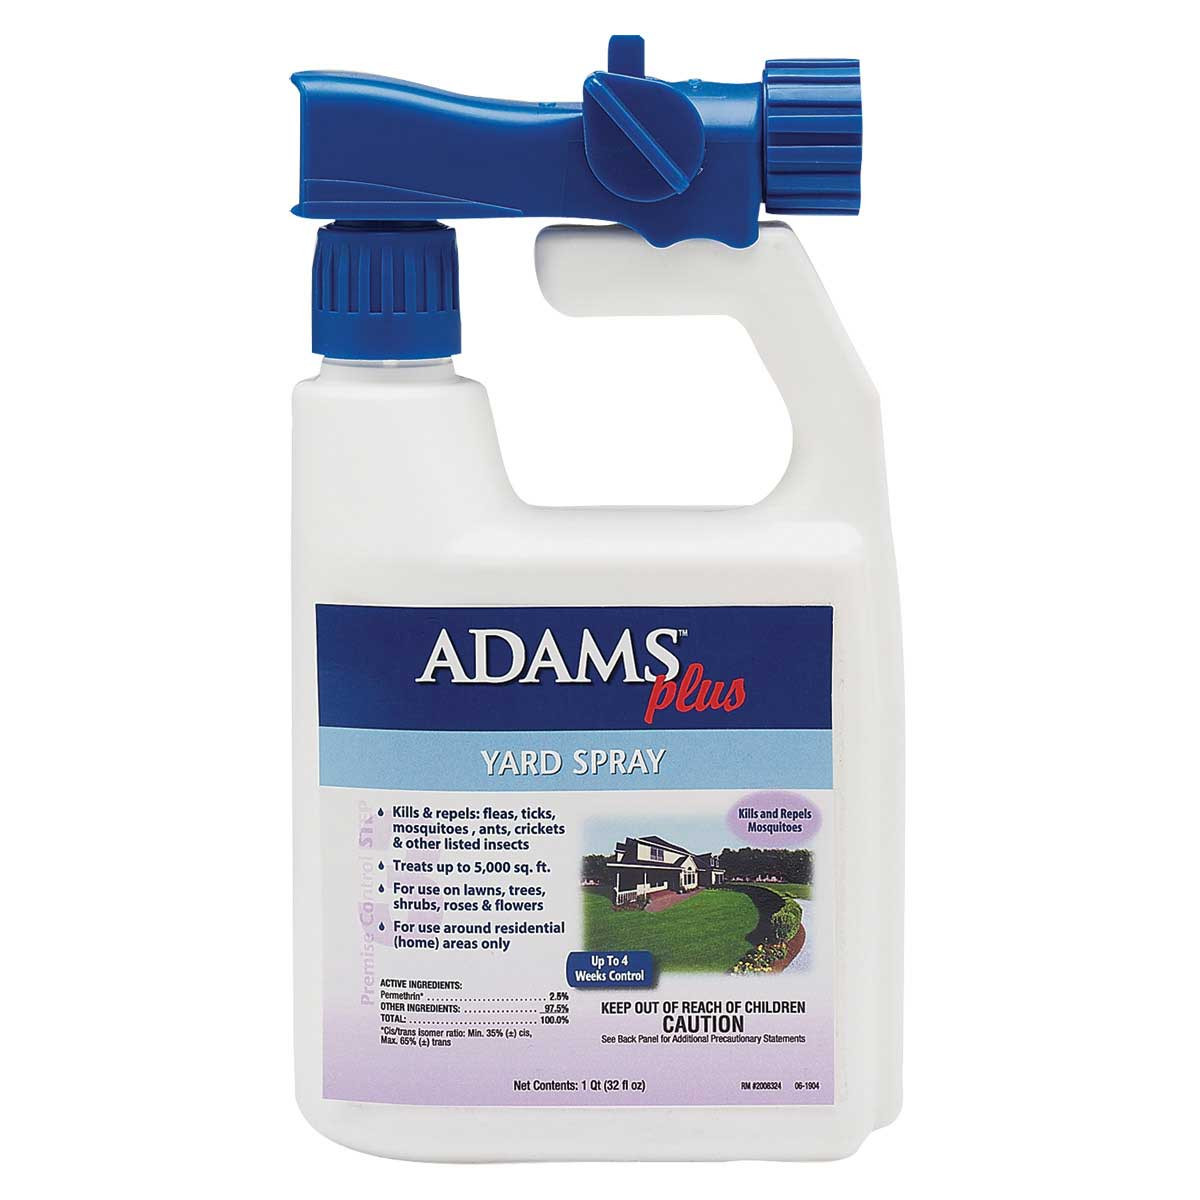 Adams Plus Yard Spray with Sprayer 32 oz - Kills and Repels Mosquitoes